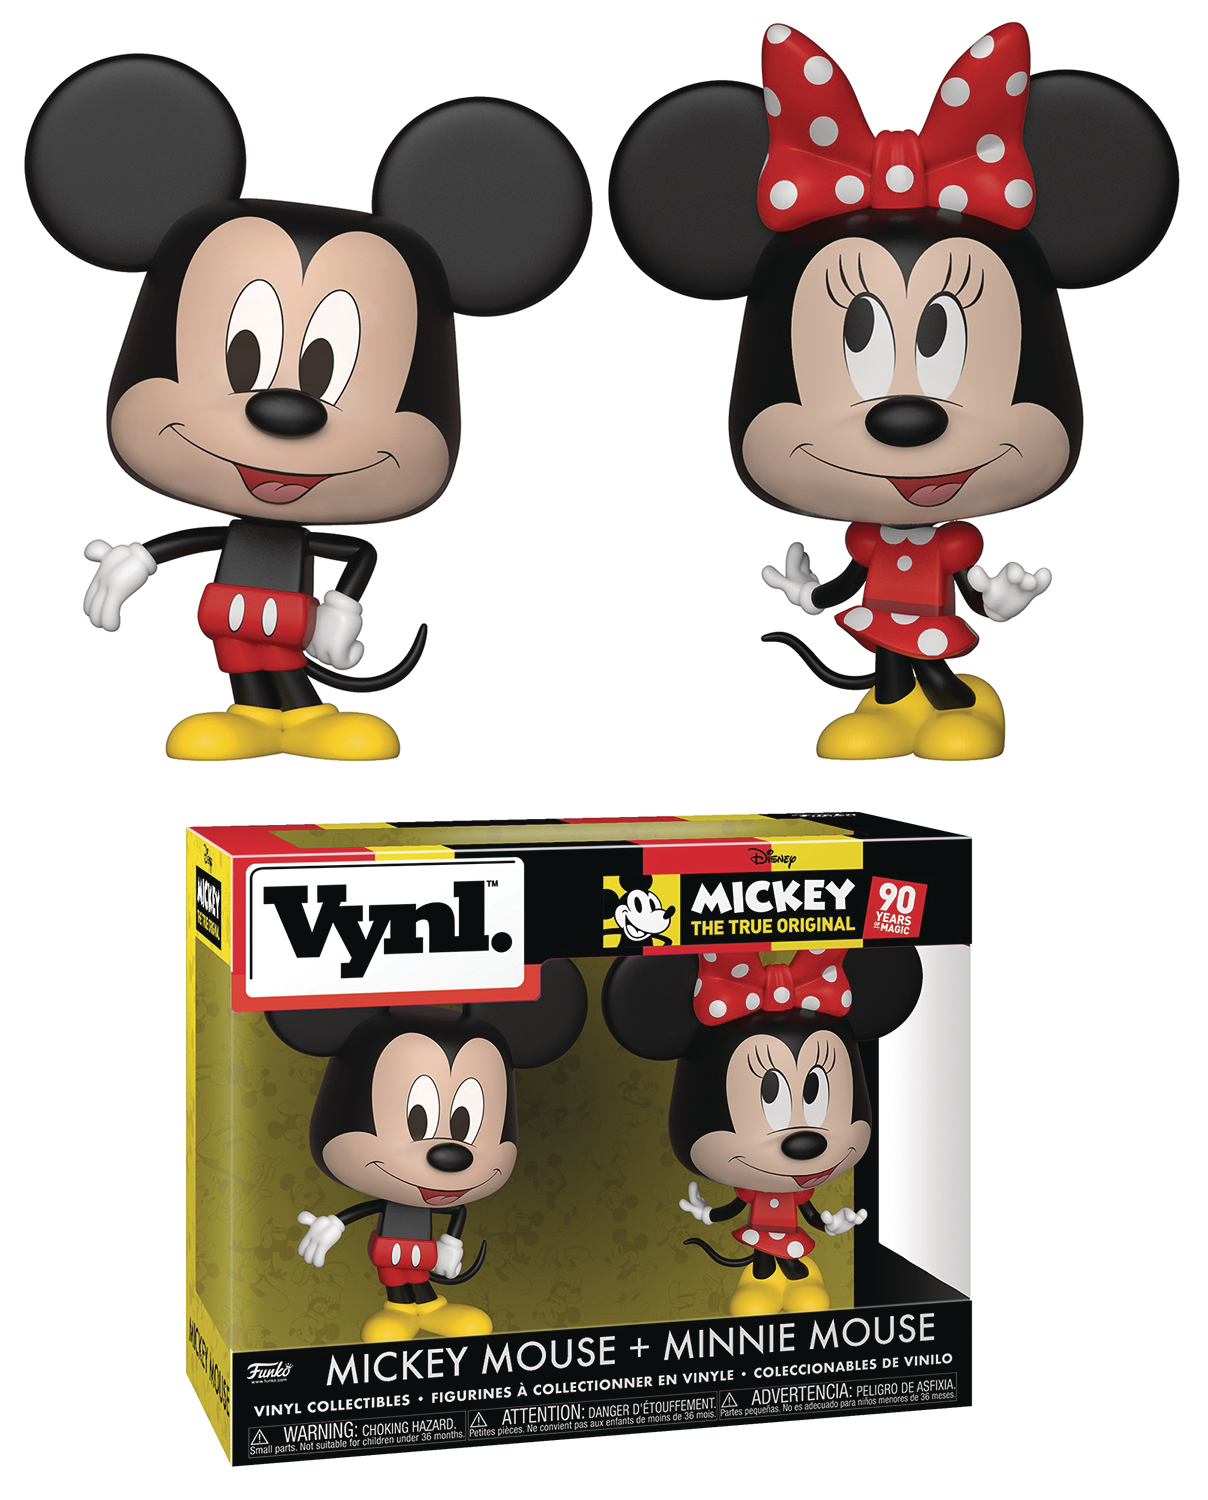 VYNL DISNEY MICKEY MOUSE & MINNIE MOUSE 2PK